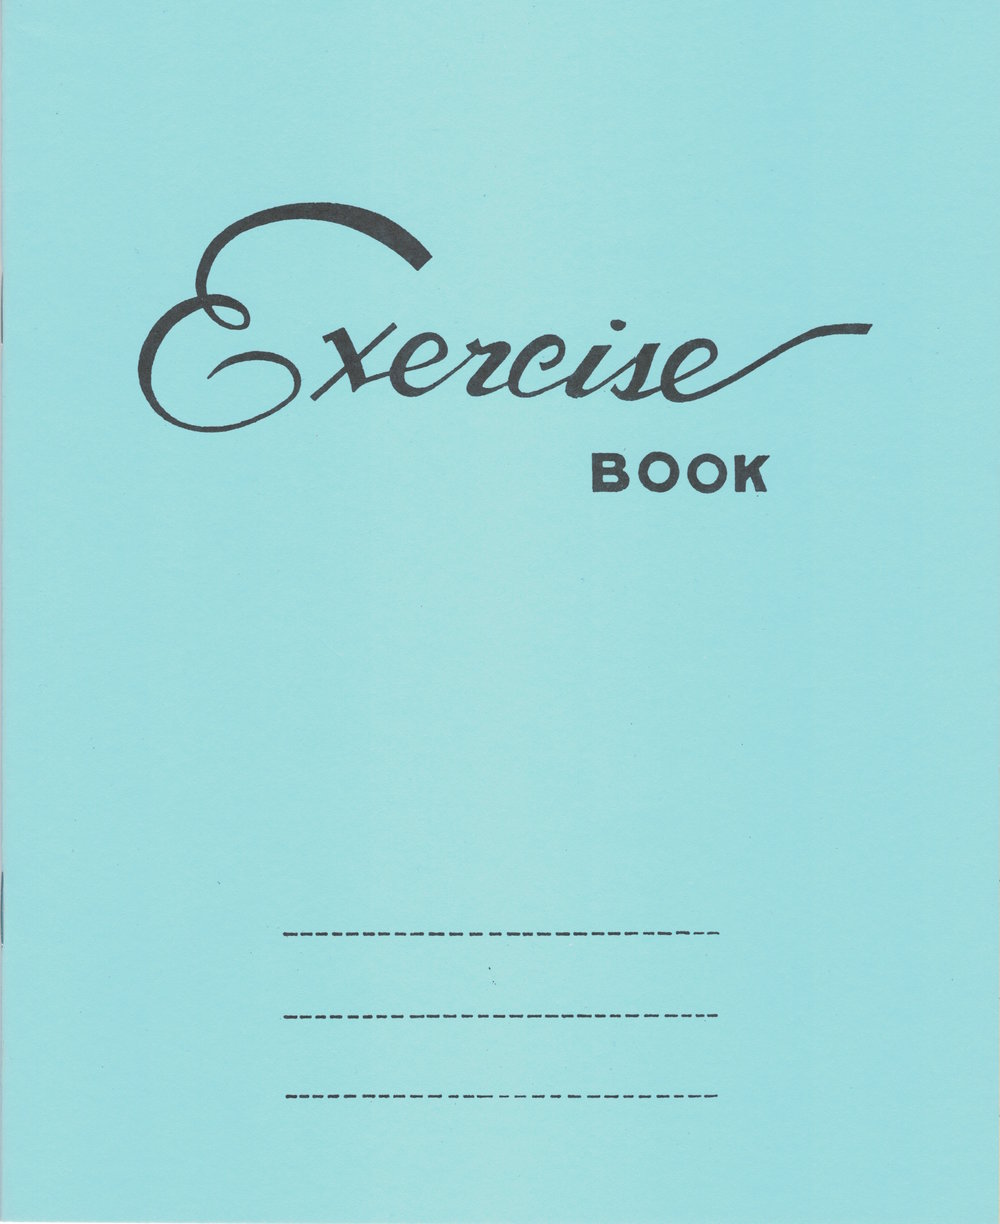 exer book front.jpg